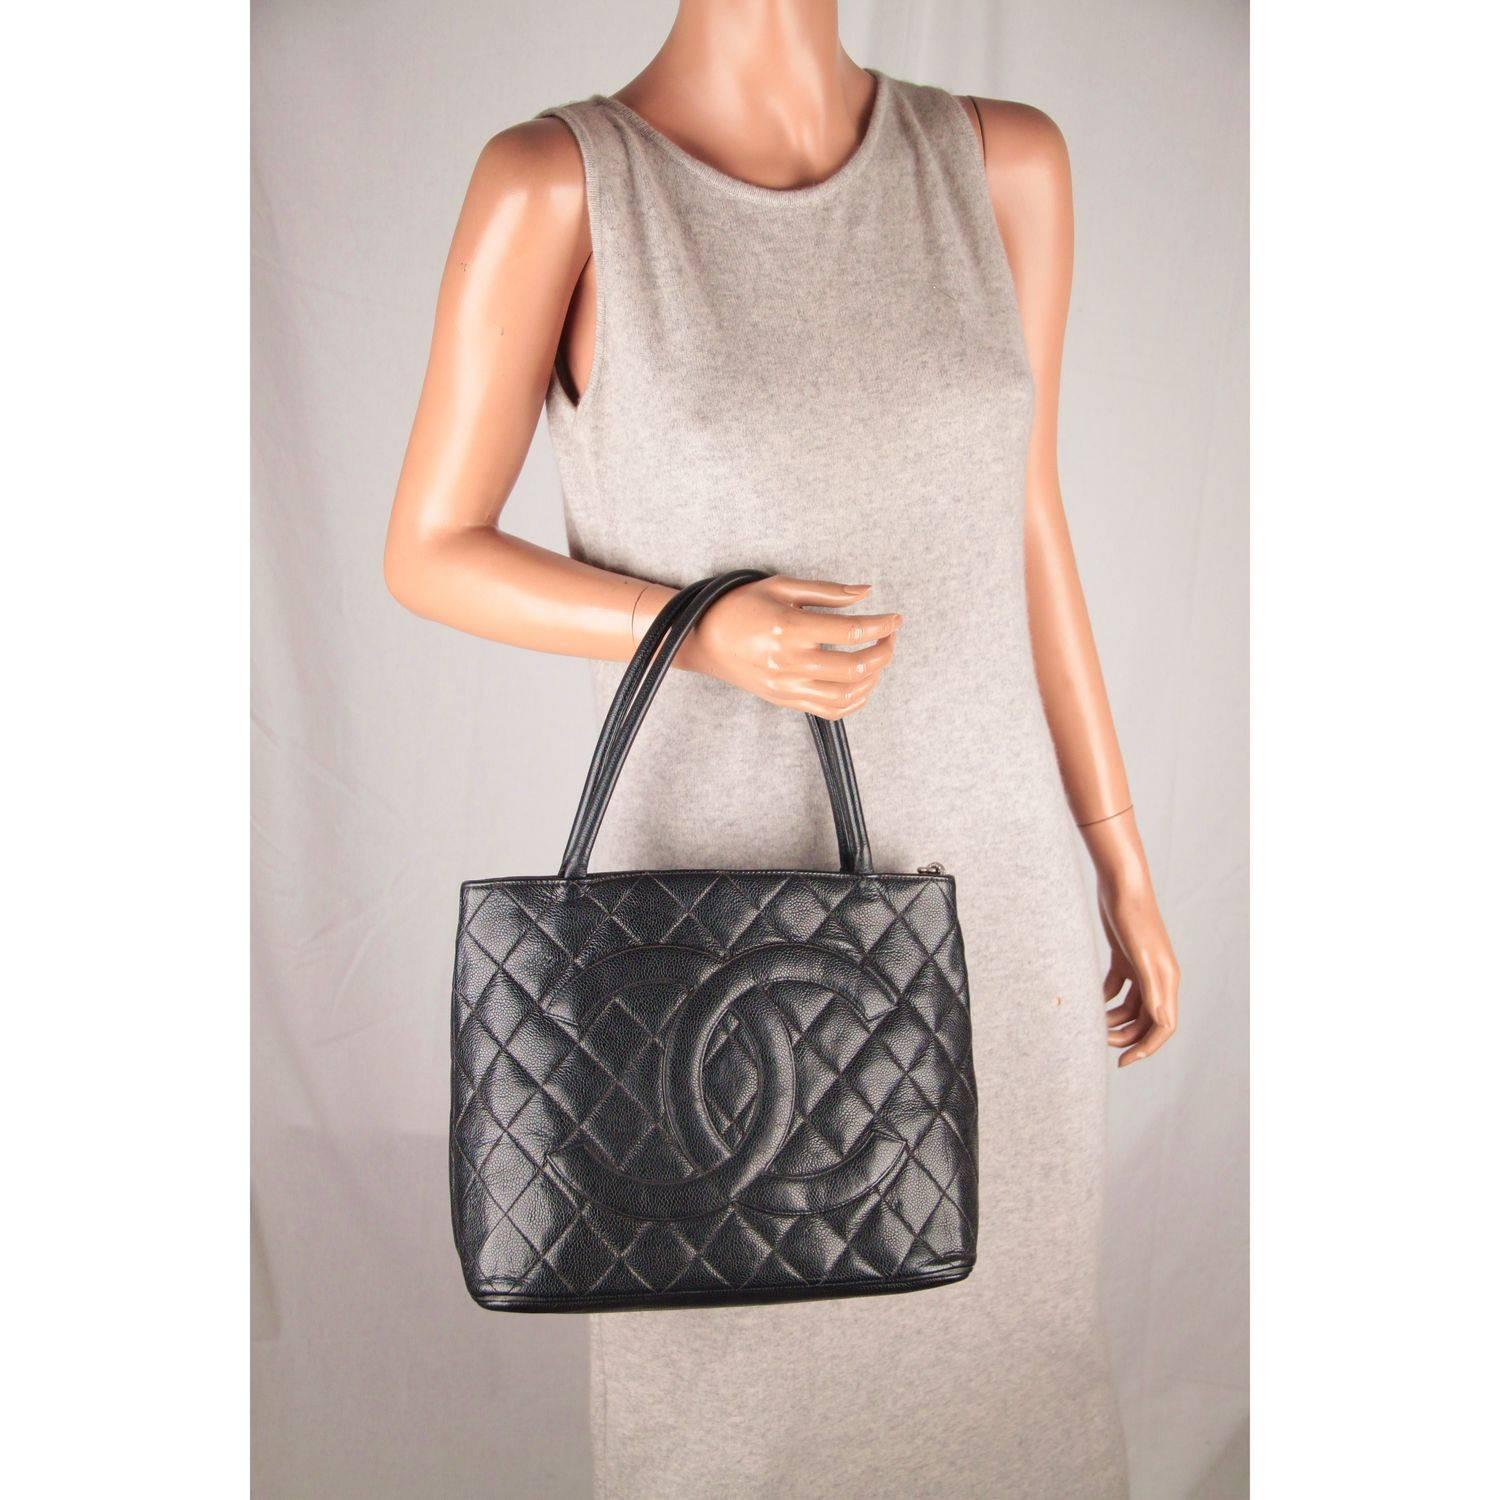 6968e5cb159e CHANEL Black Quilted Caviar Leather MEDALLION Tote Bag For Sale at 1stdibs